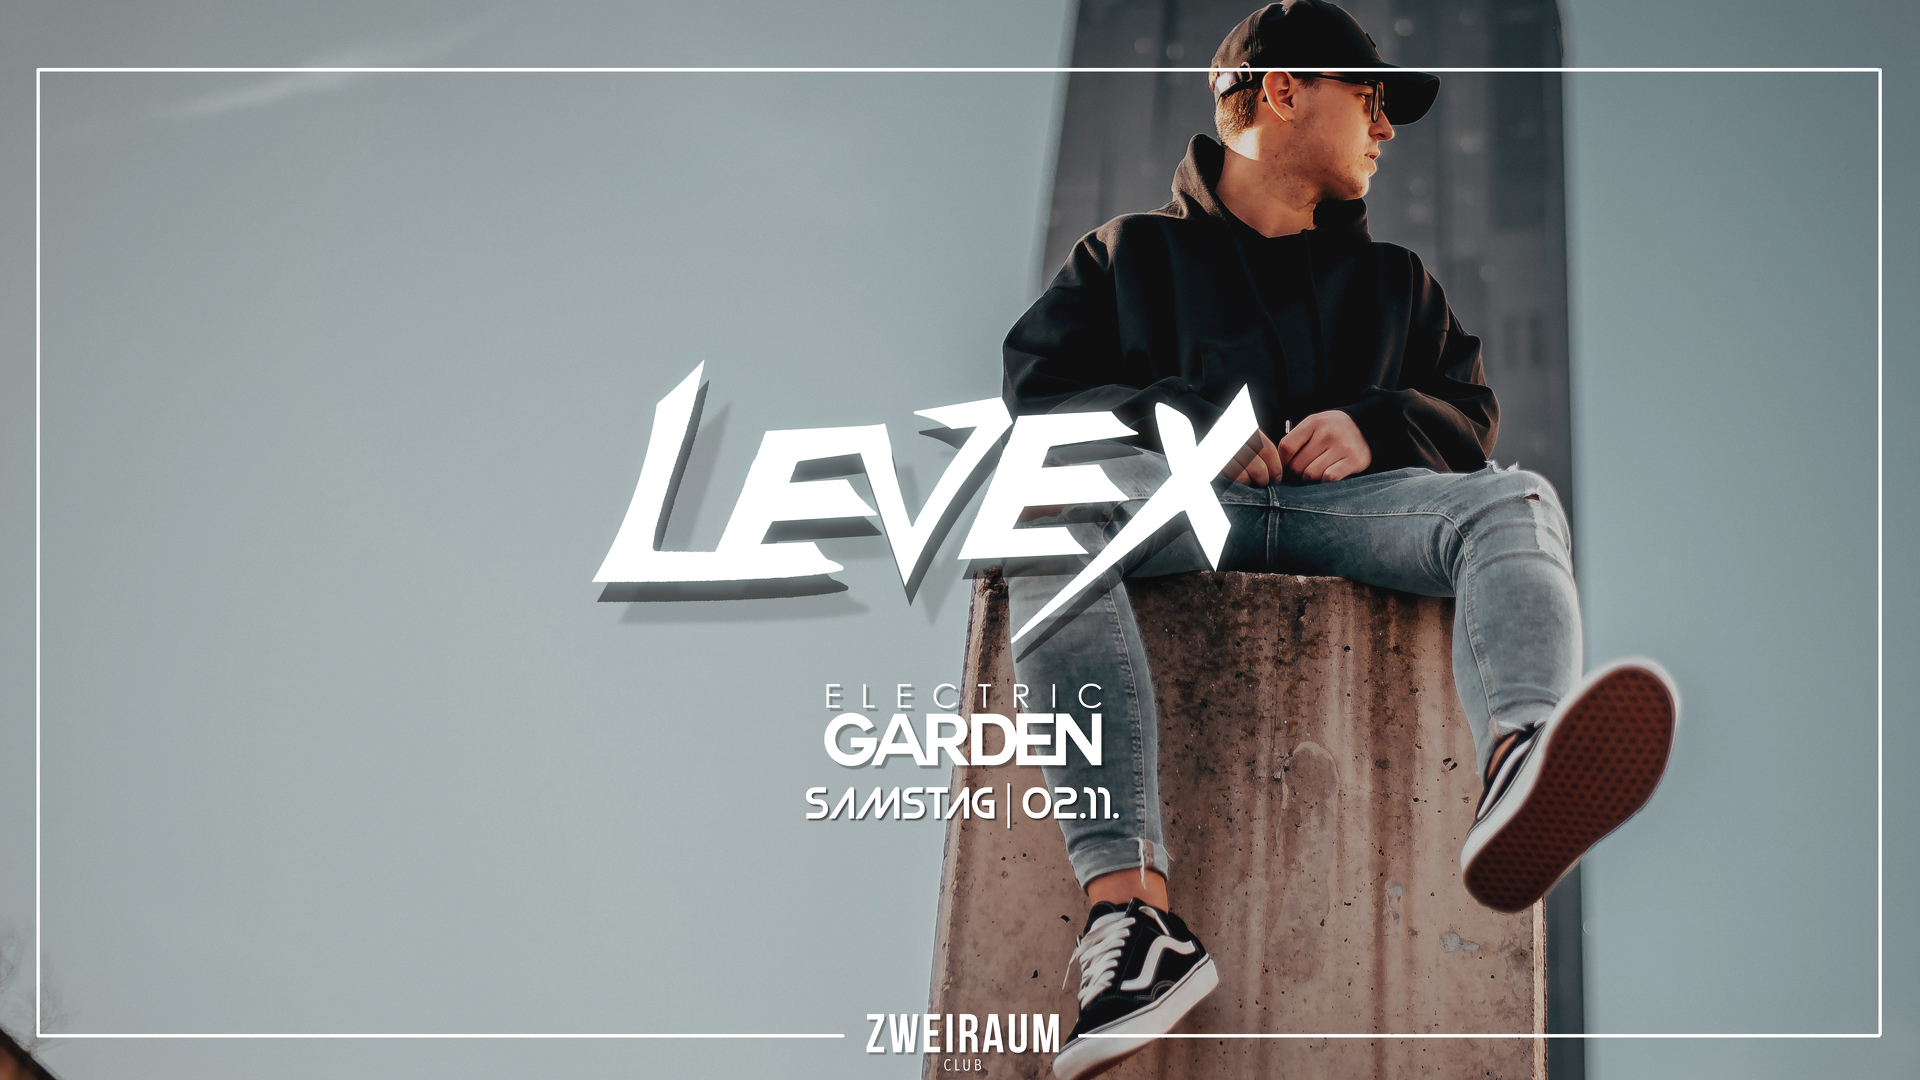 ELECTRIC GARDEN with LEVEX